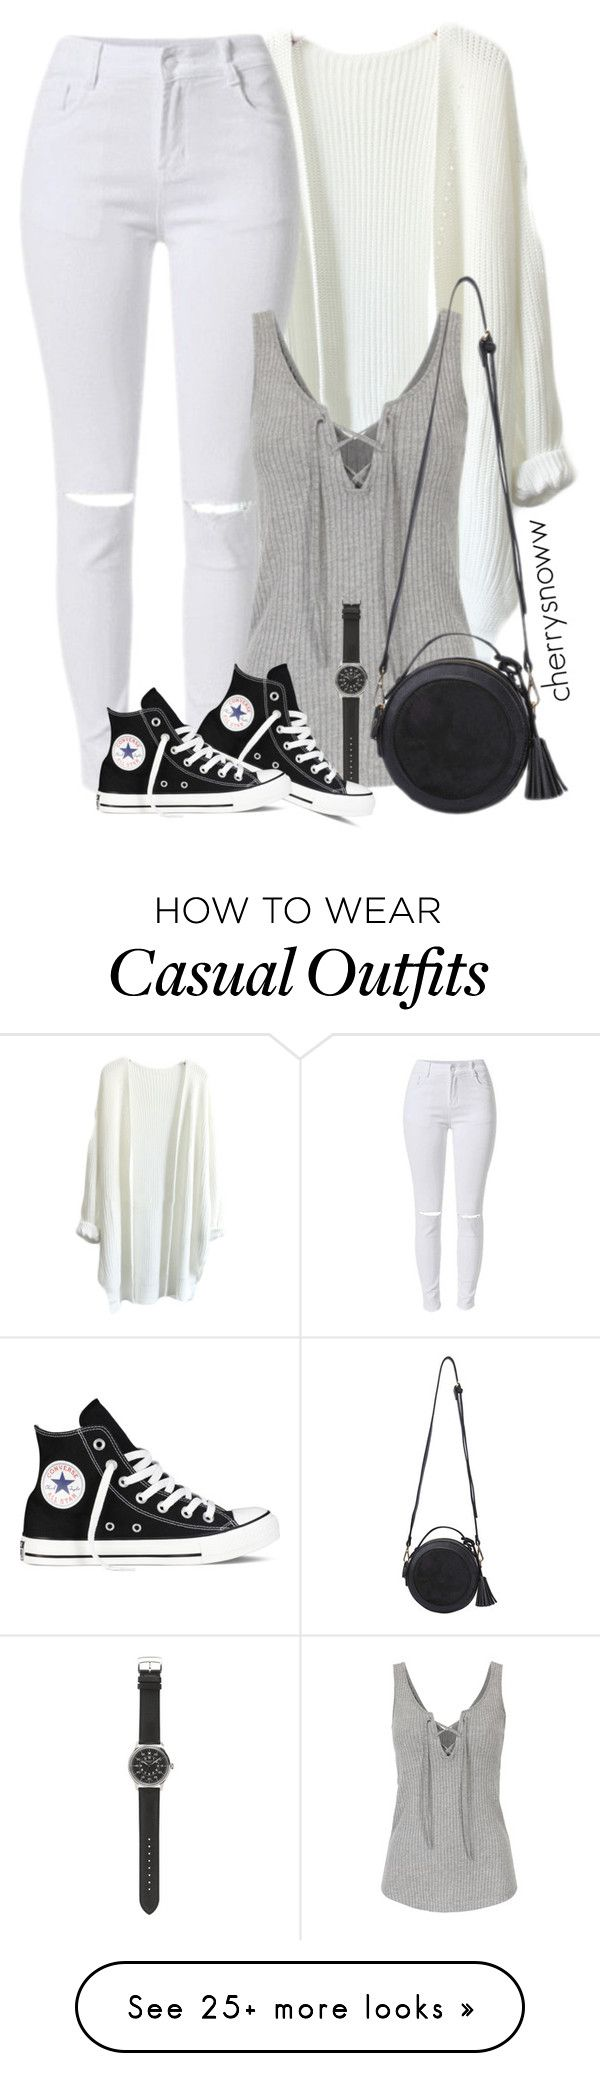 """Monochrome casual spring outfit"" by cherrysnoww on Polyvore featuring J.Crew and Converse"